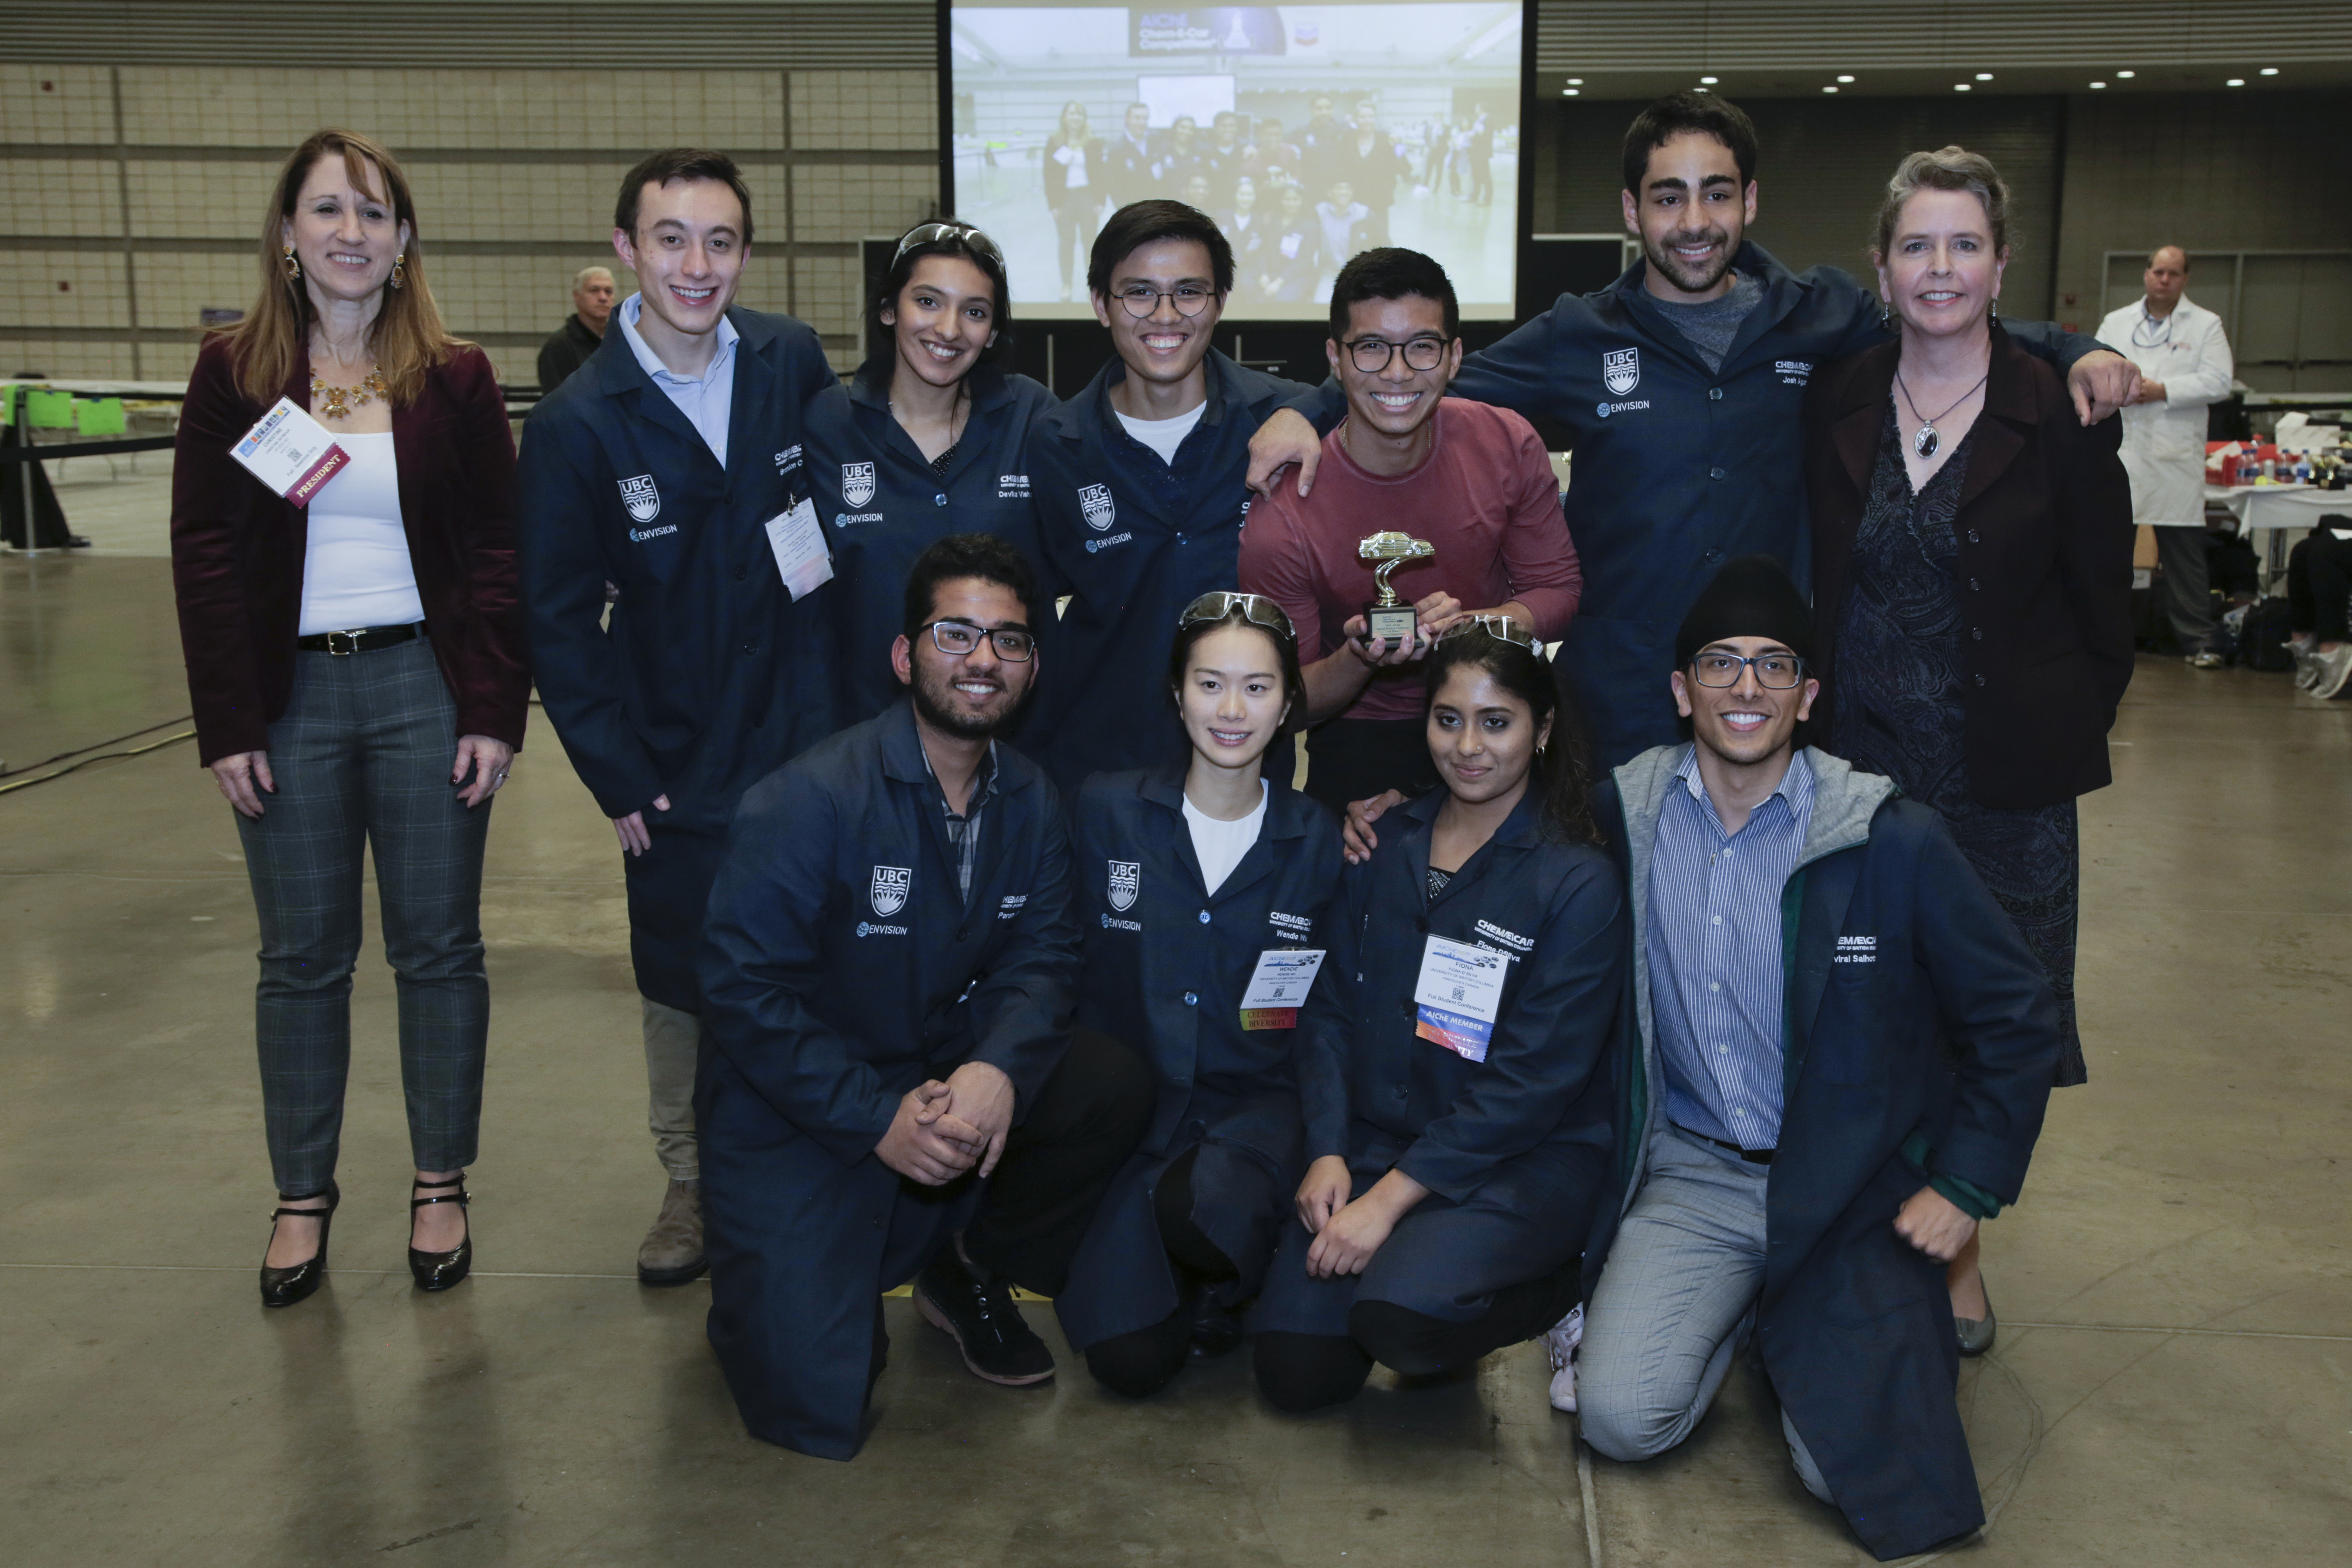 University of British Columbia, first place for poster competition